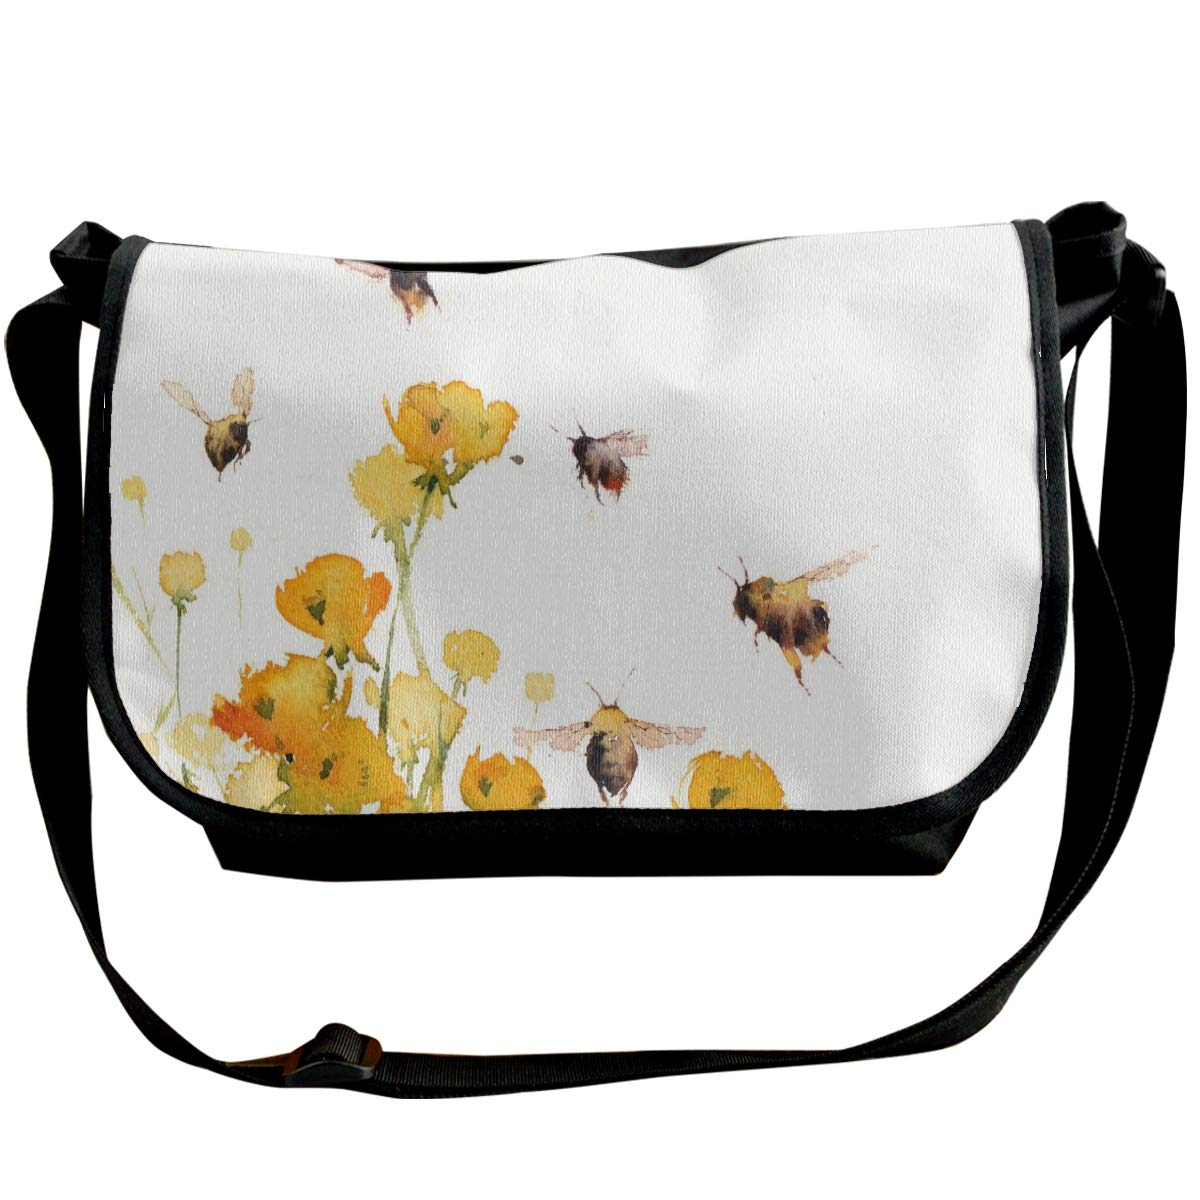 Osborne Bee With Buttercups Unisex Crossbody Single Shoulder Bag Messenger Bag